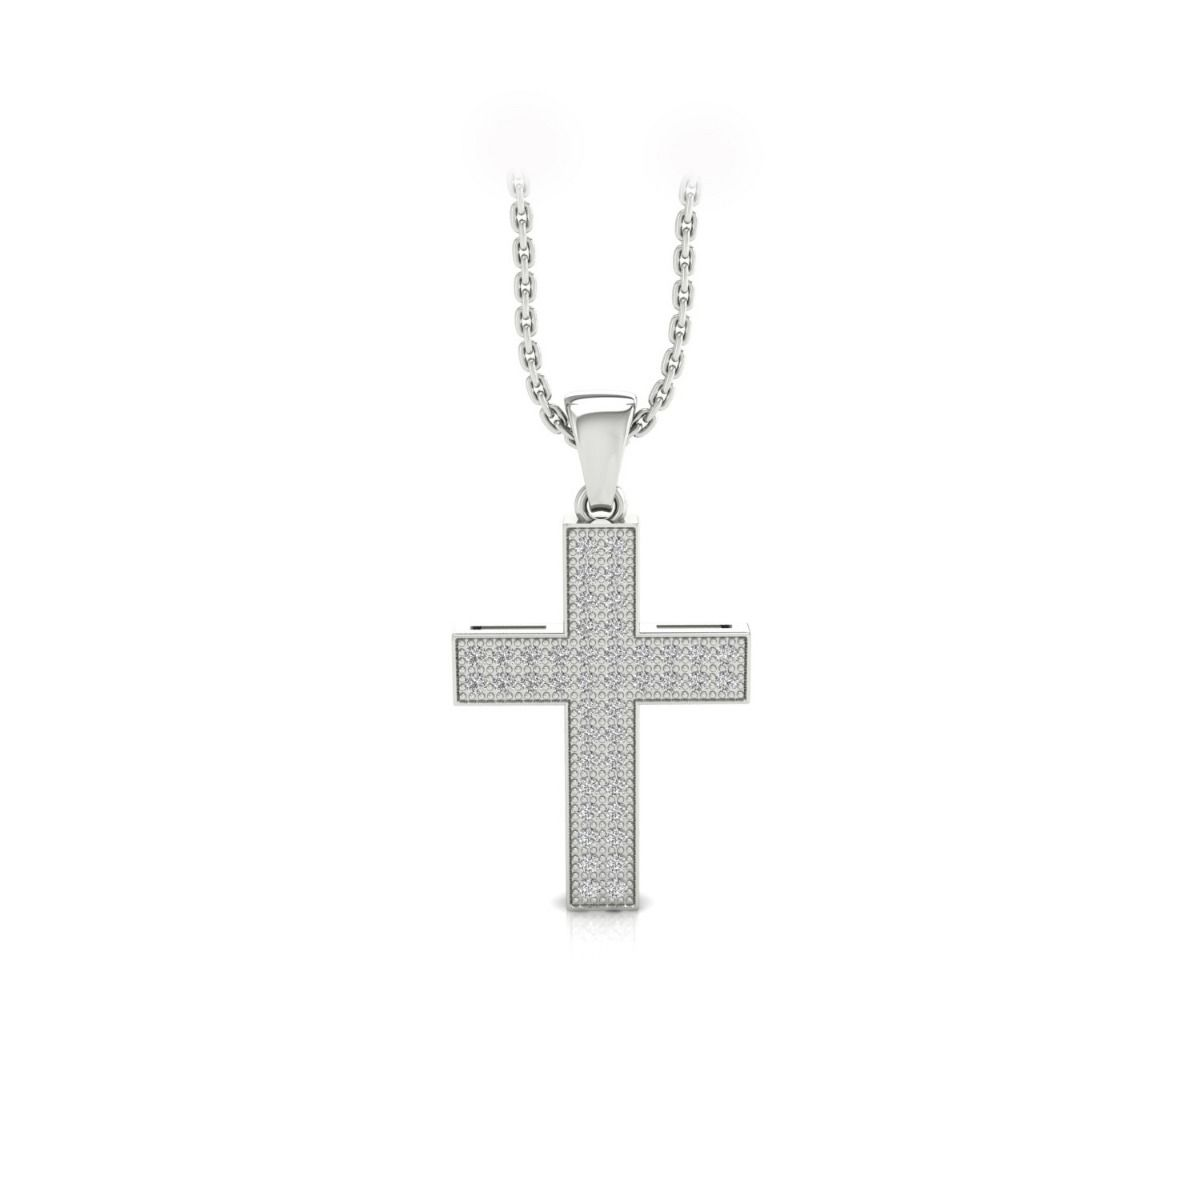 North 1.86ct cross lab grown diamond pendant